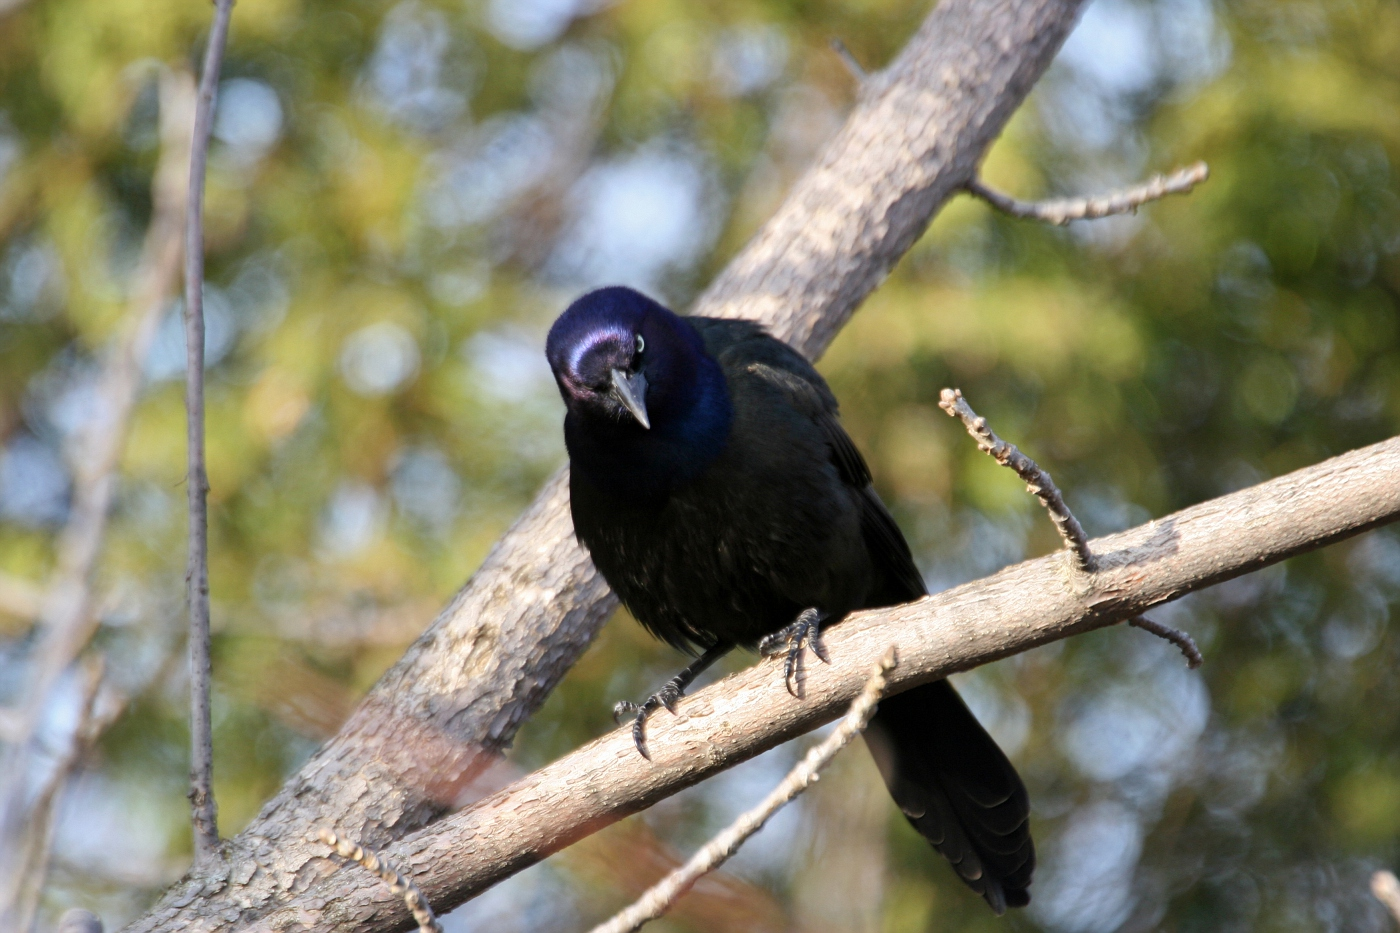 Staring Grackle